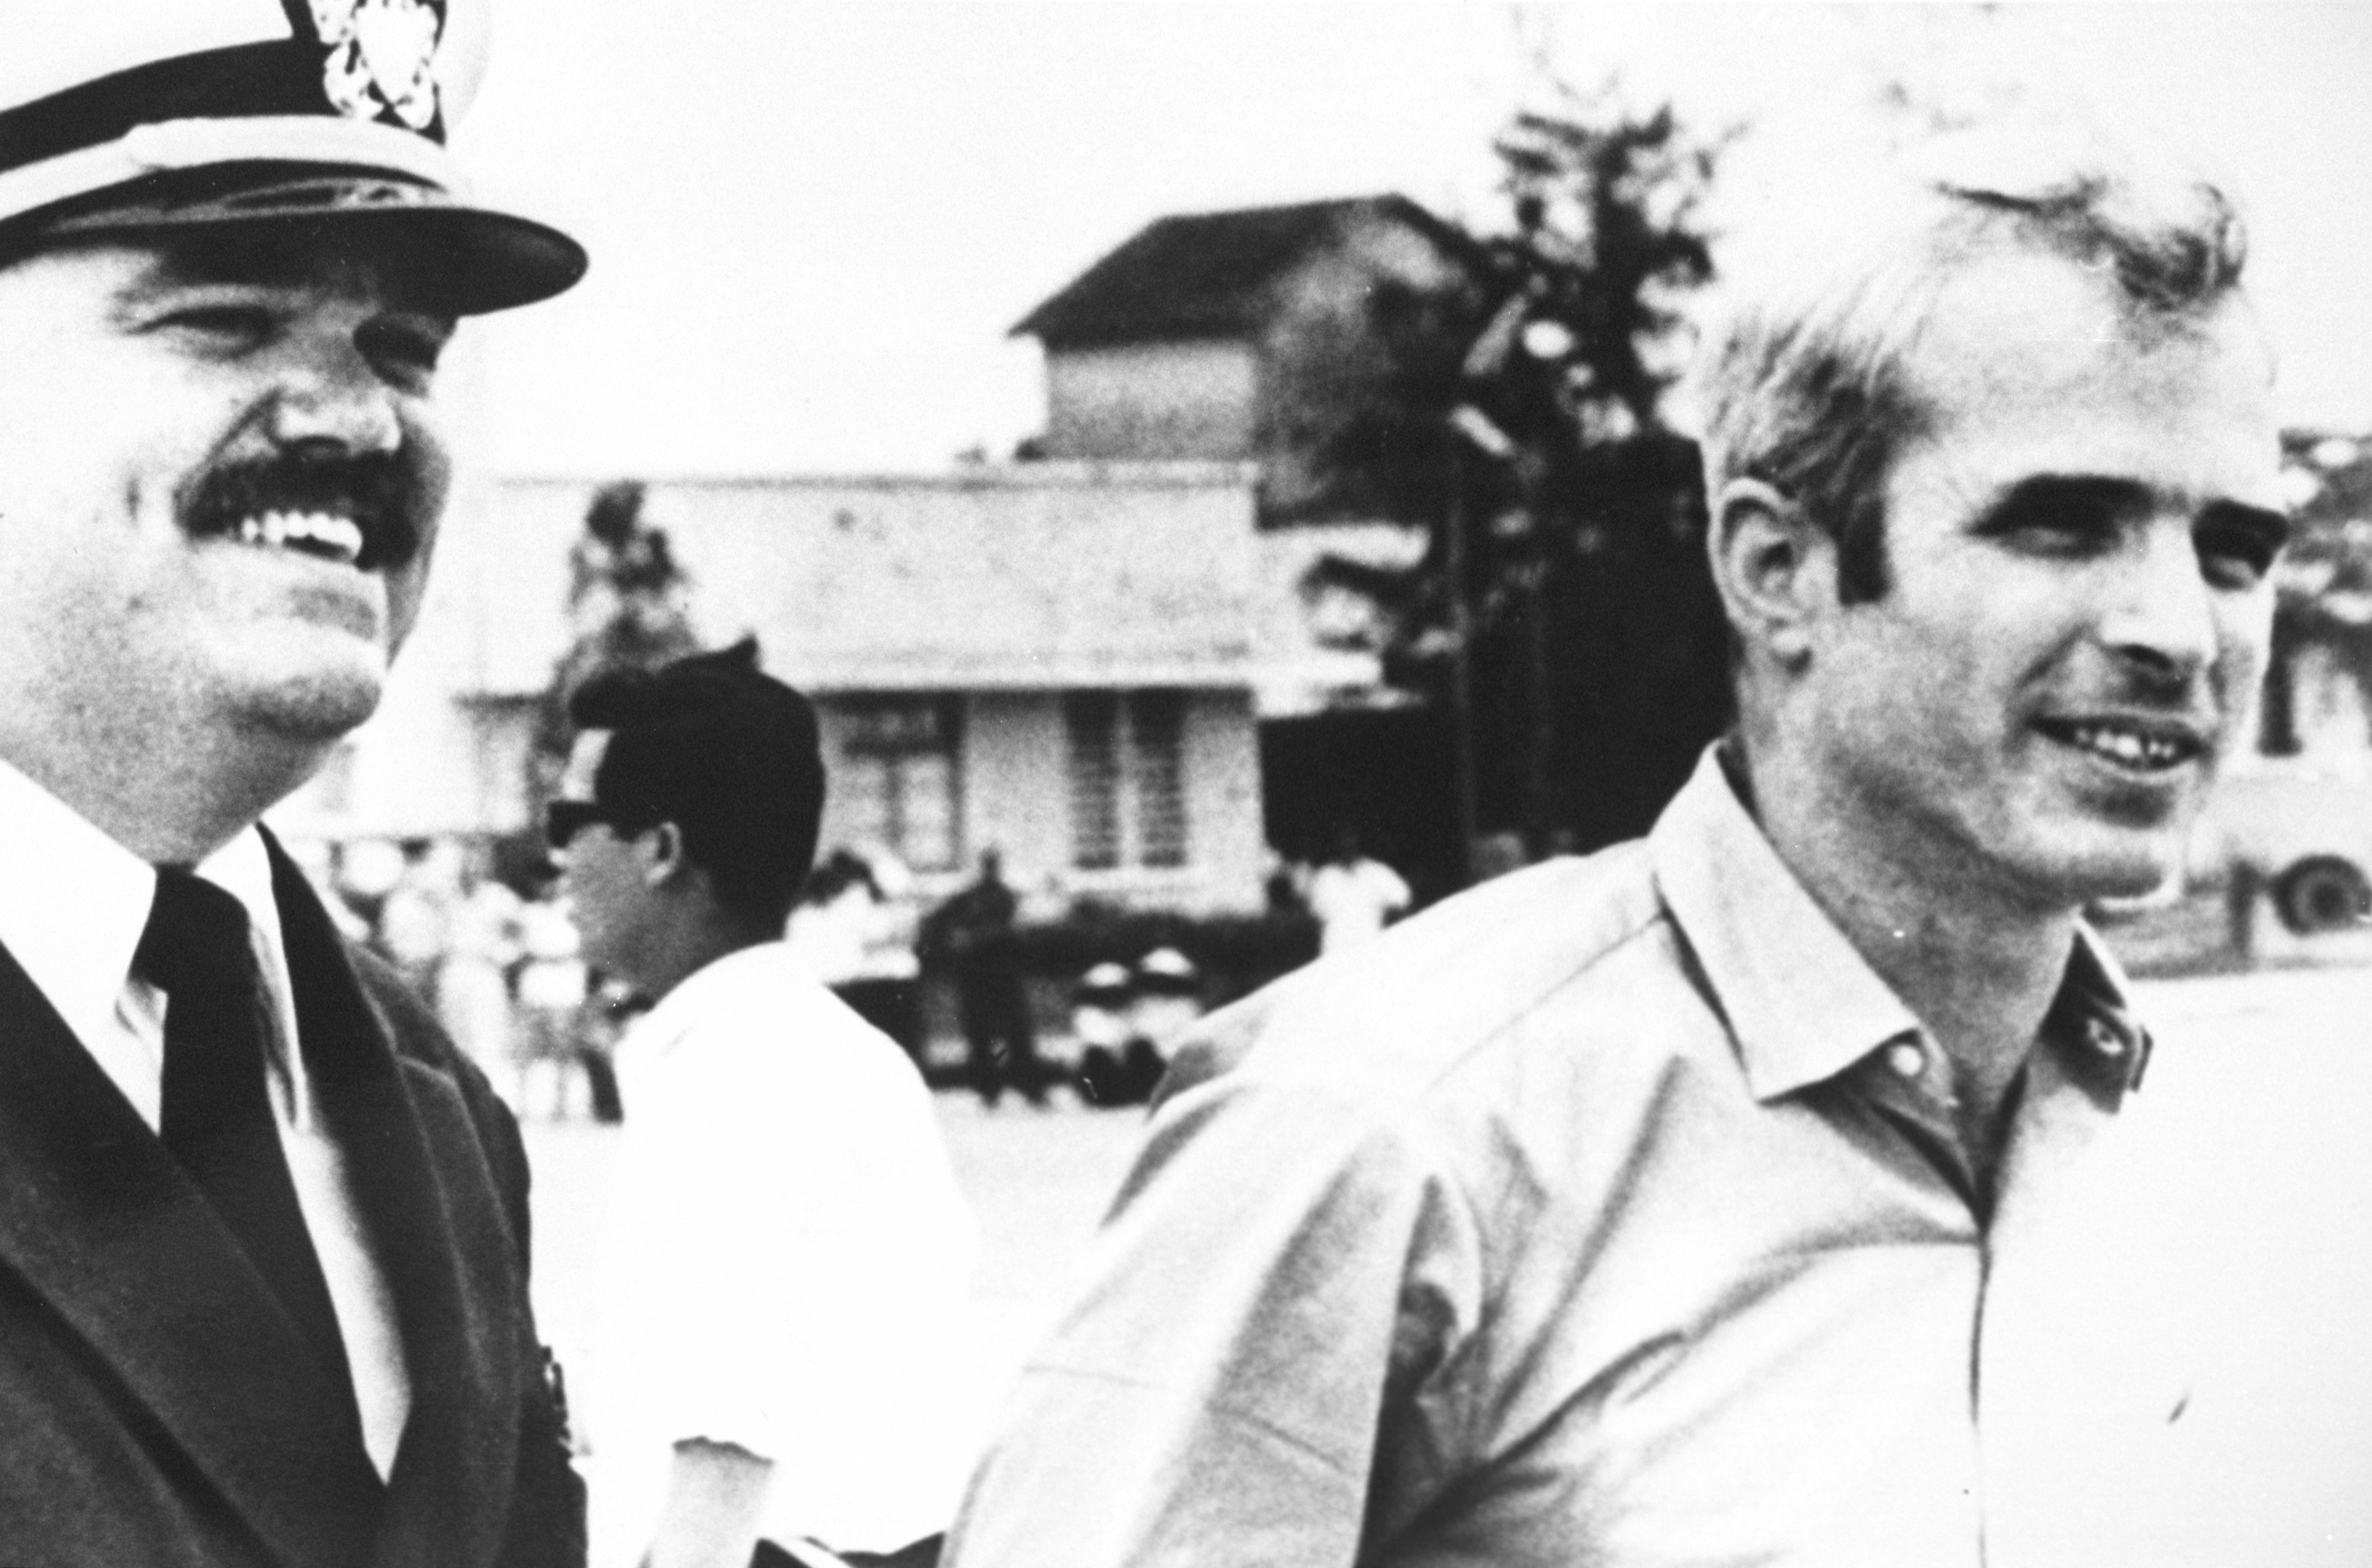 (File Photo) U.S. Navy Lt. Cmdr. Jay Coupe, Left, Escorts Lt. Cmdr. John Mccain To A Waiting U.S. Air Force C-141A Starlifter Cargo Transport Aircraft At Gia Lam Airport March 14, 1973 In Hanoi, North Vietnam. Senator Mccain Had Just Been Released From A North Vietnamese Prison Camp.